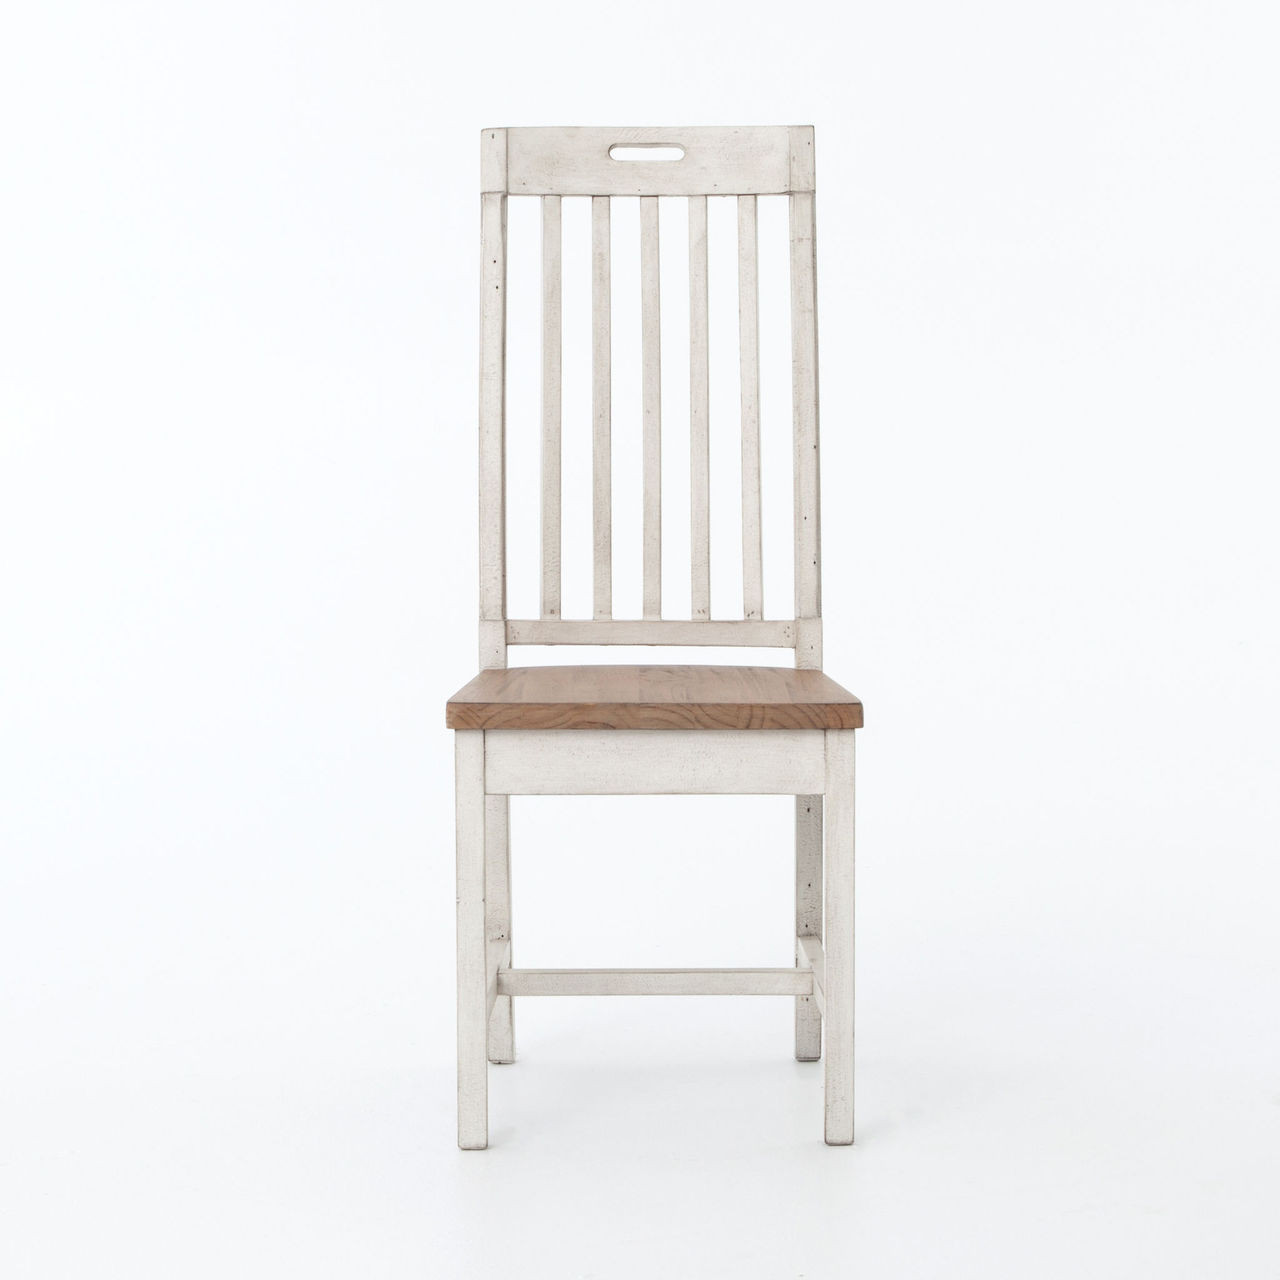 Dining Room Wood Chairs: Cintra Rustic Wood White Dining Room Chair